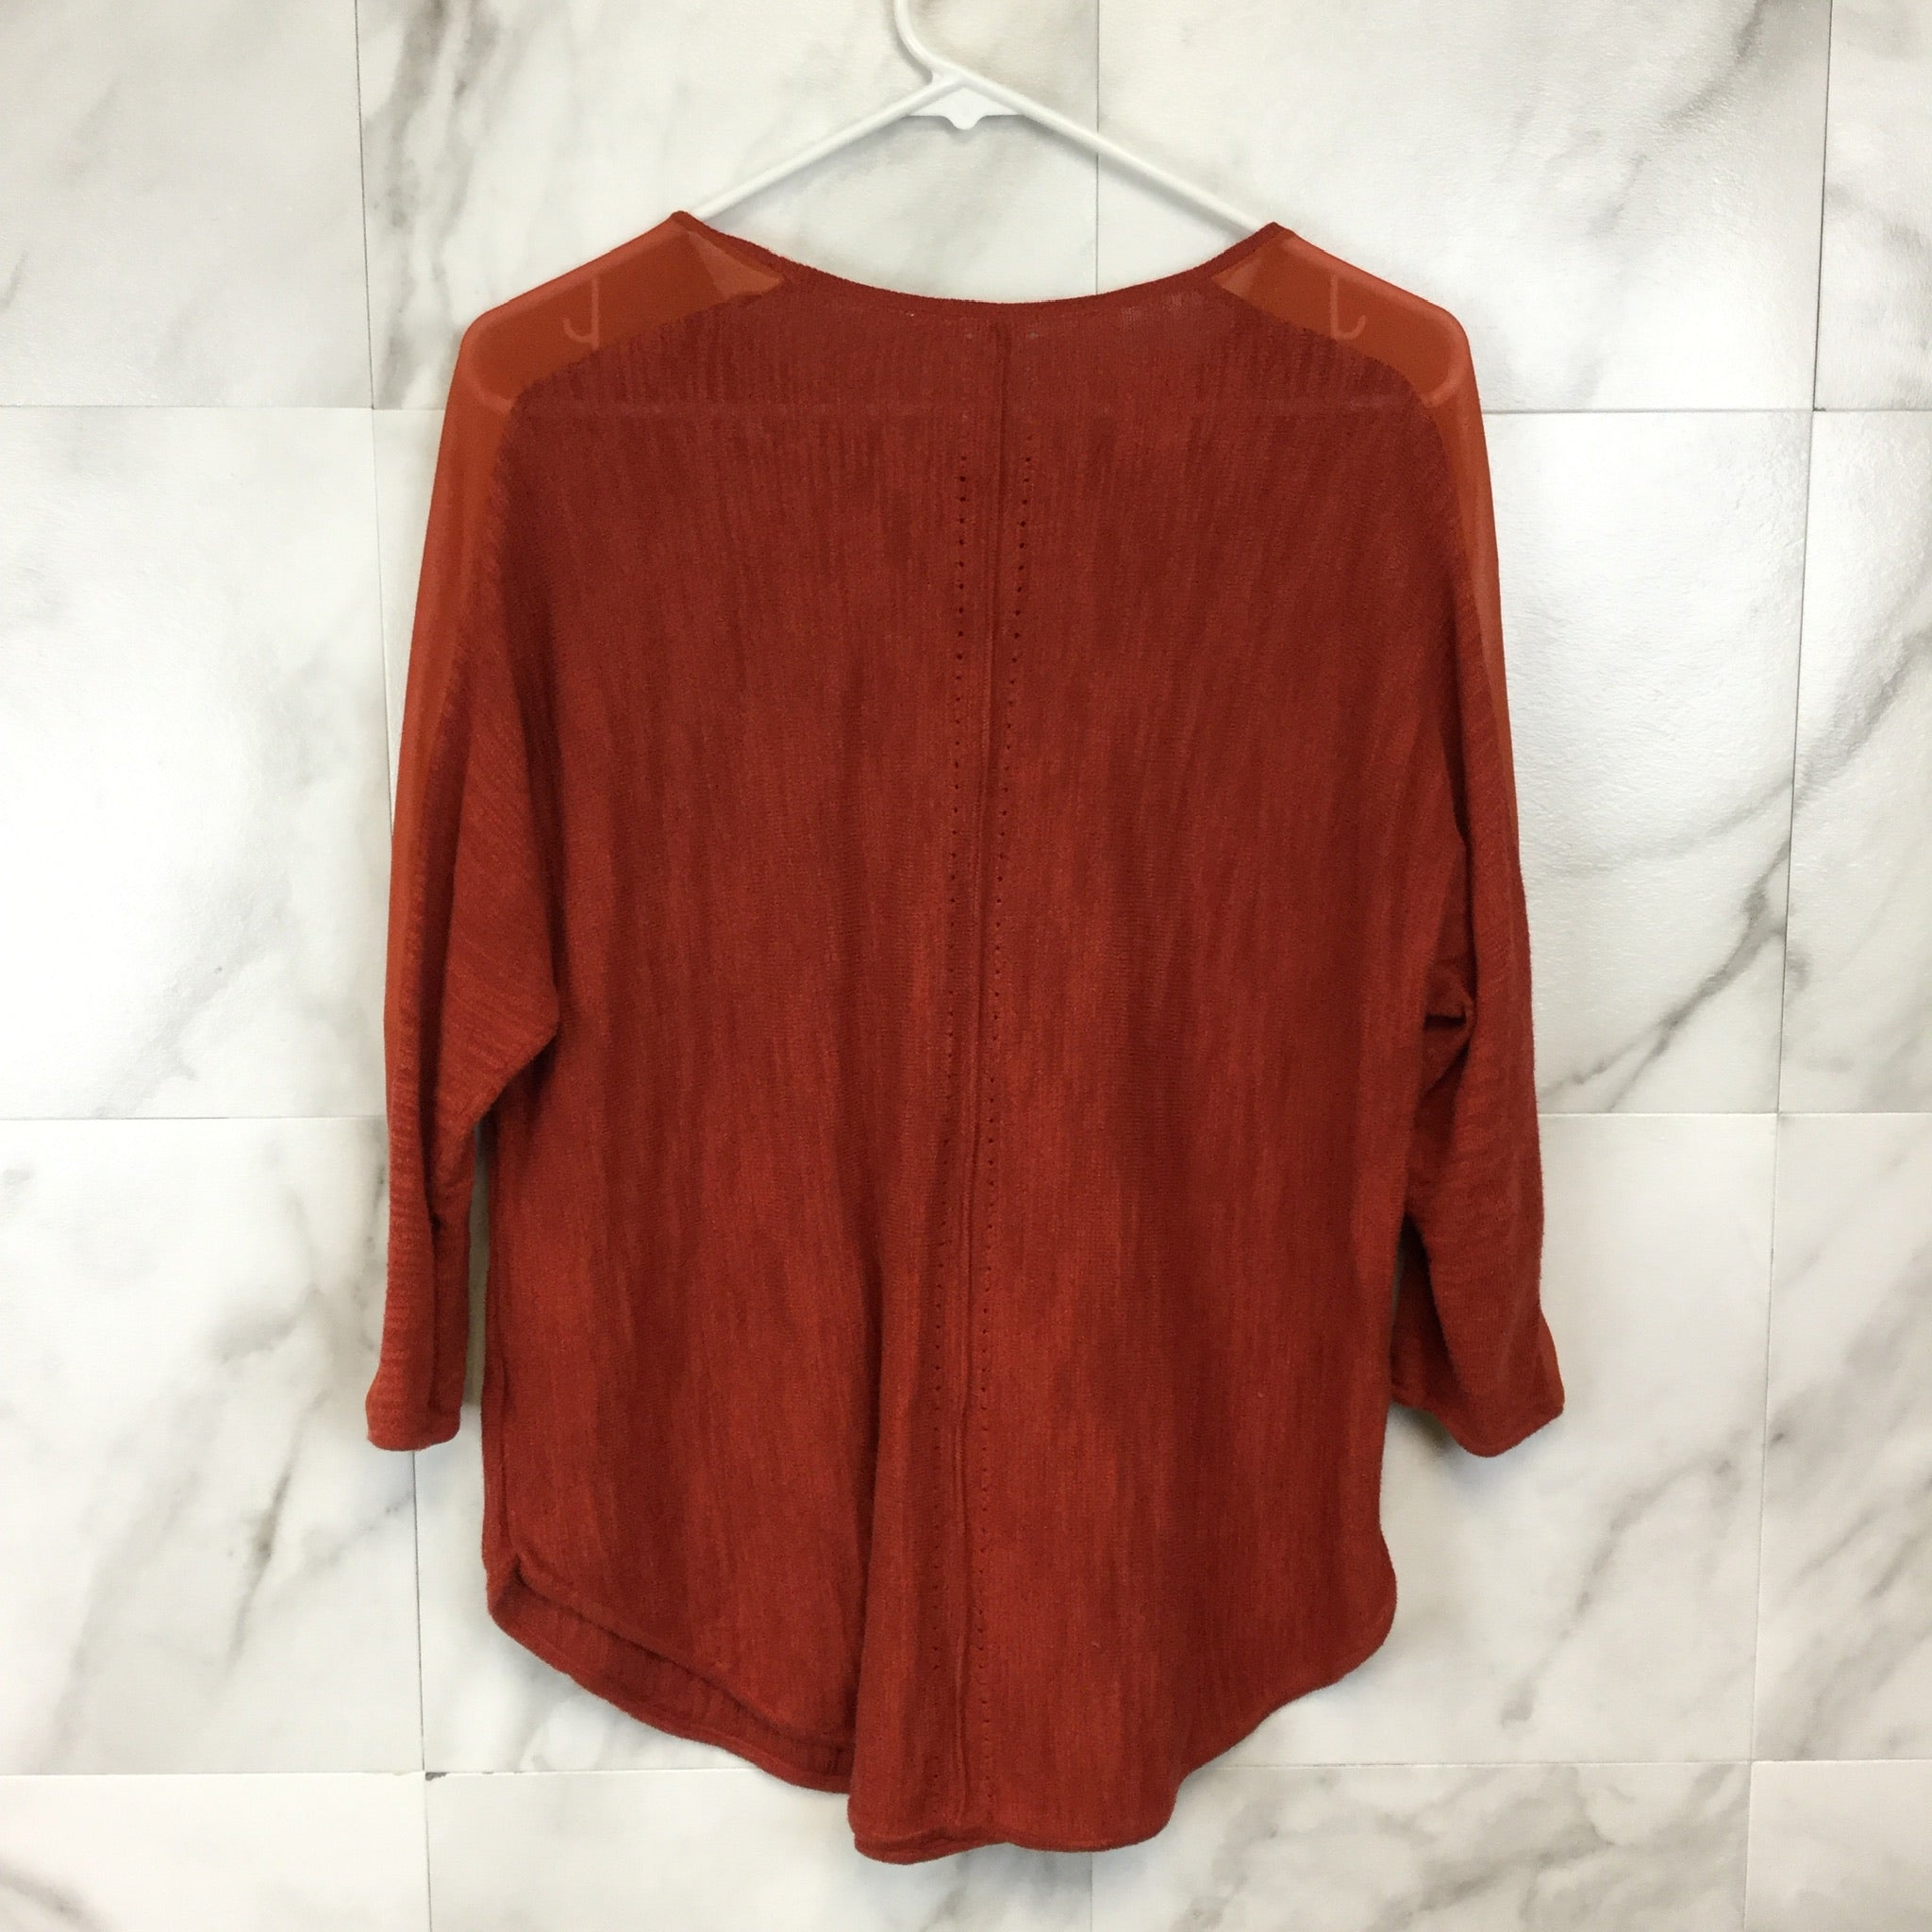 Anthropologie Moth Sheer Sleeve Knit Top - Size M